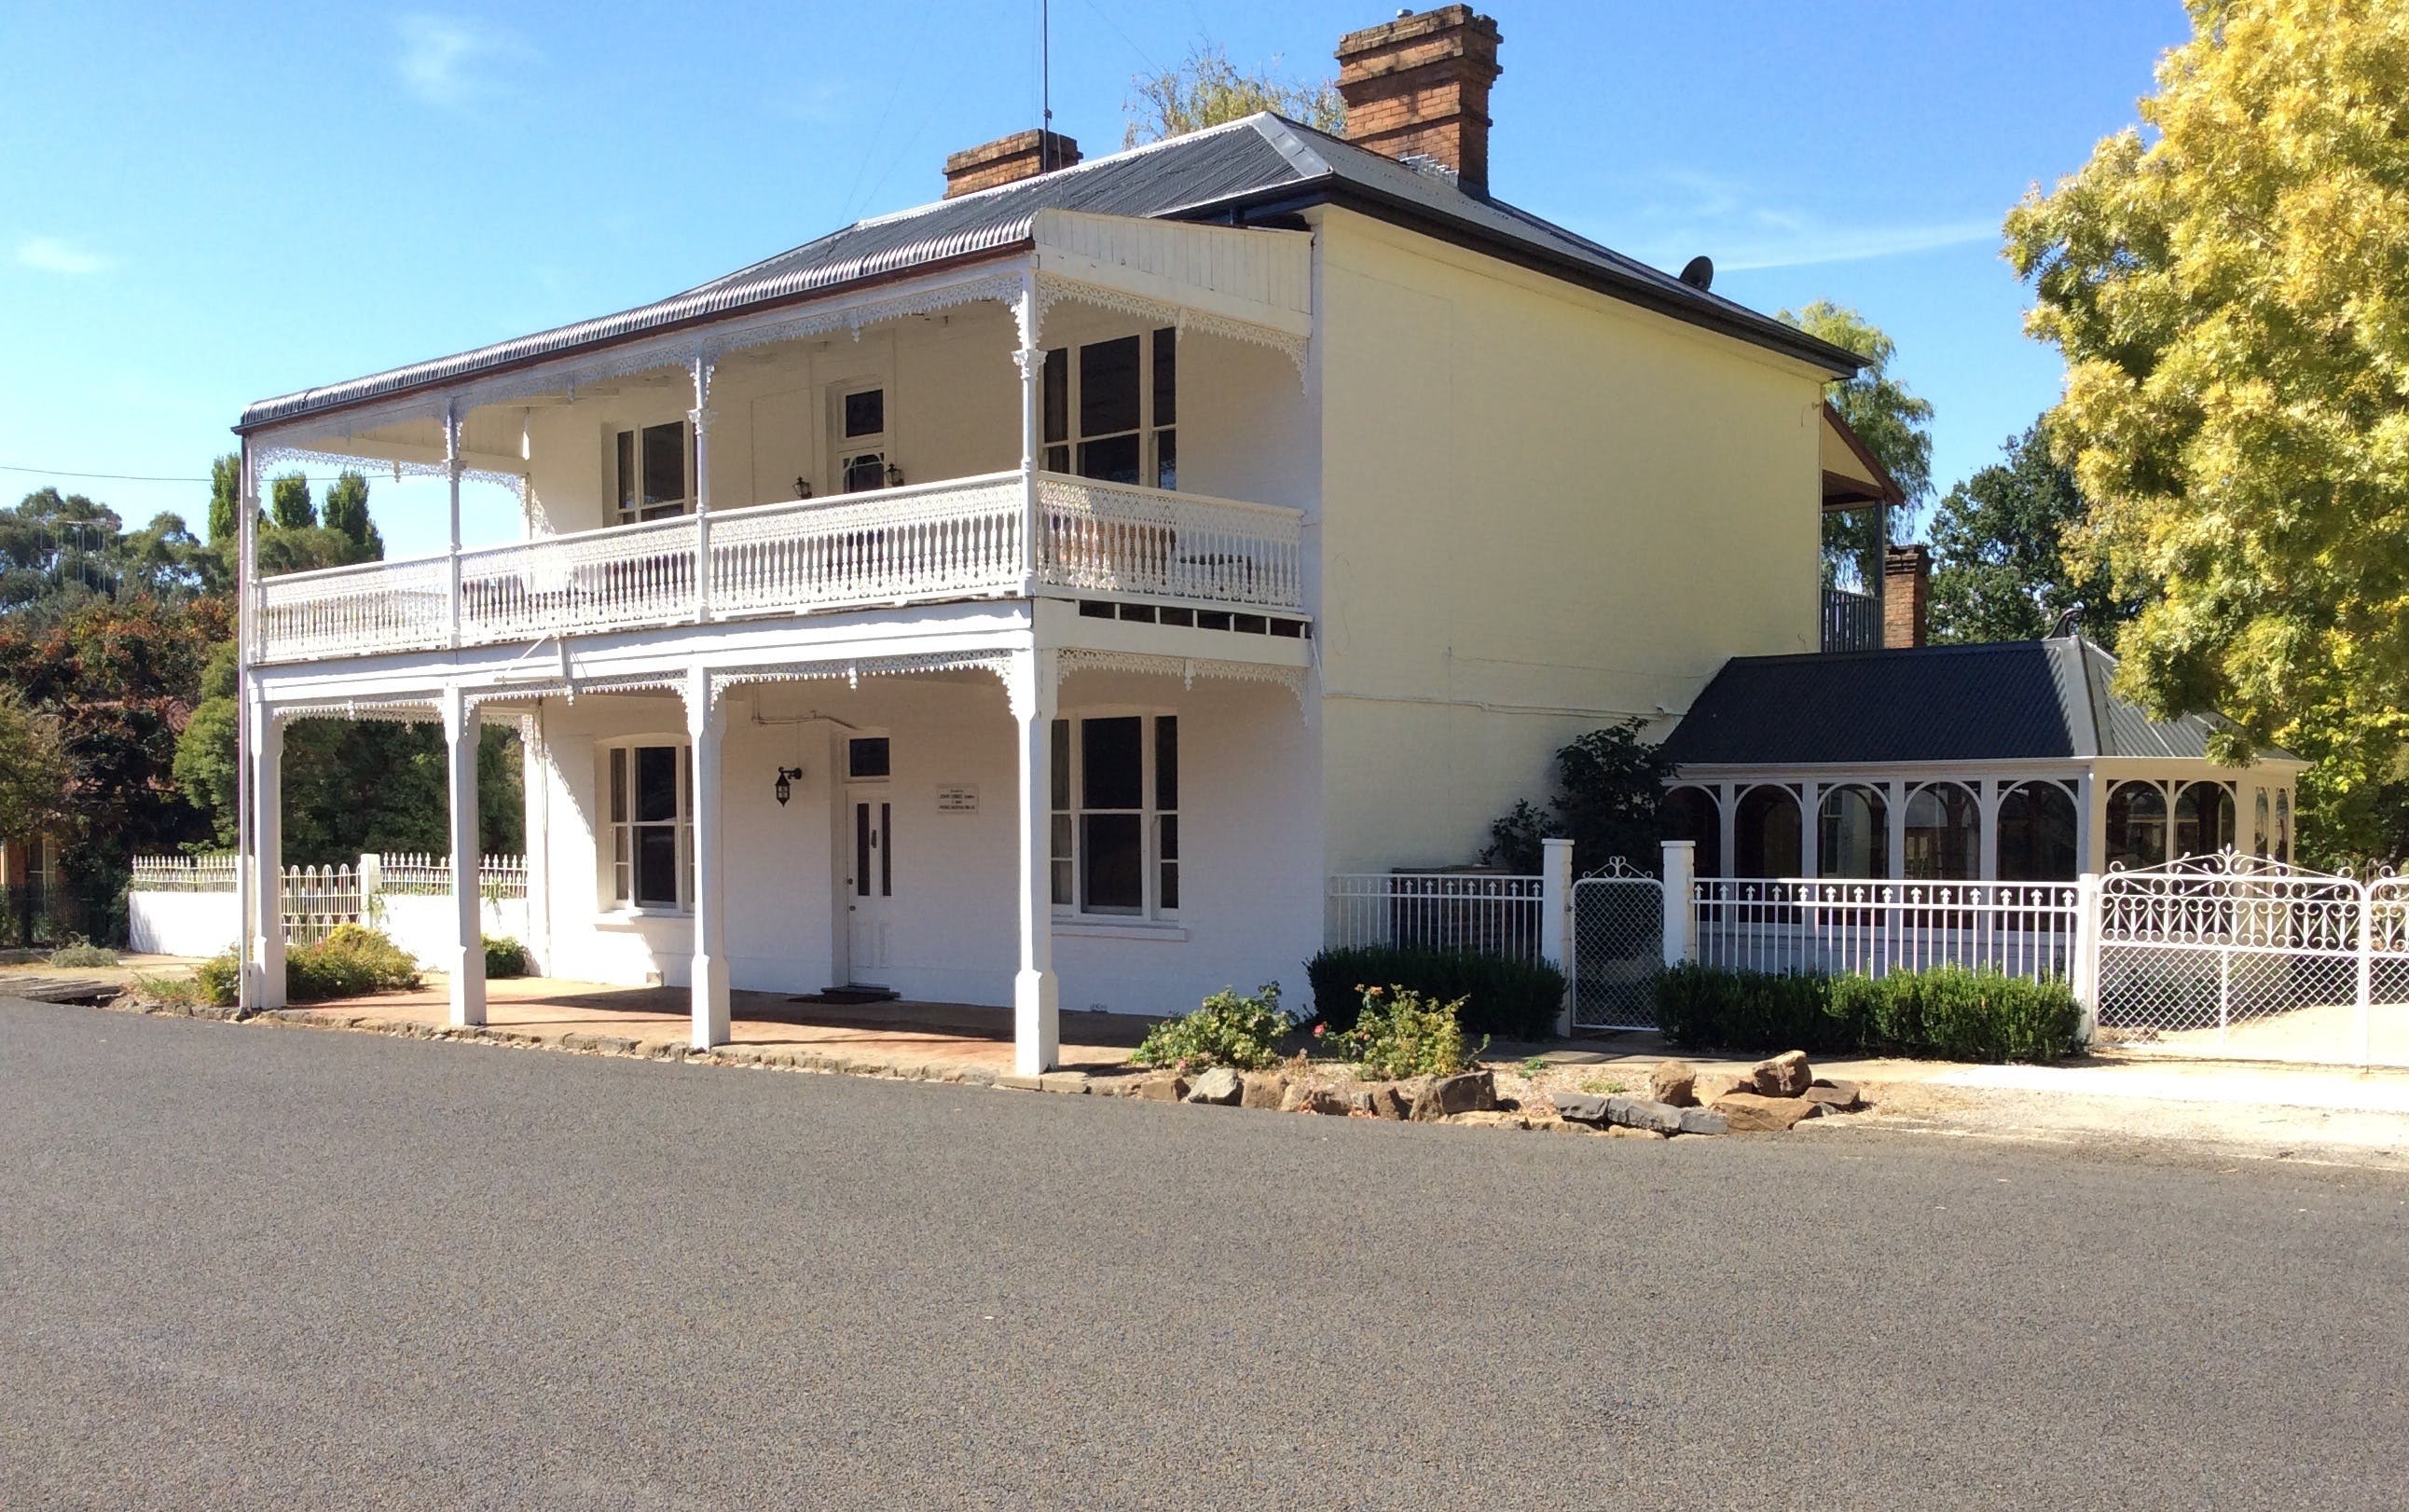 The White House Carcoar - Dalby Accommodation